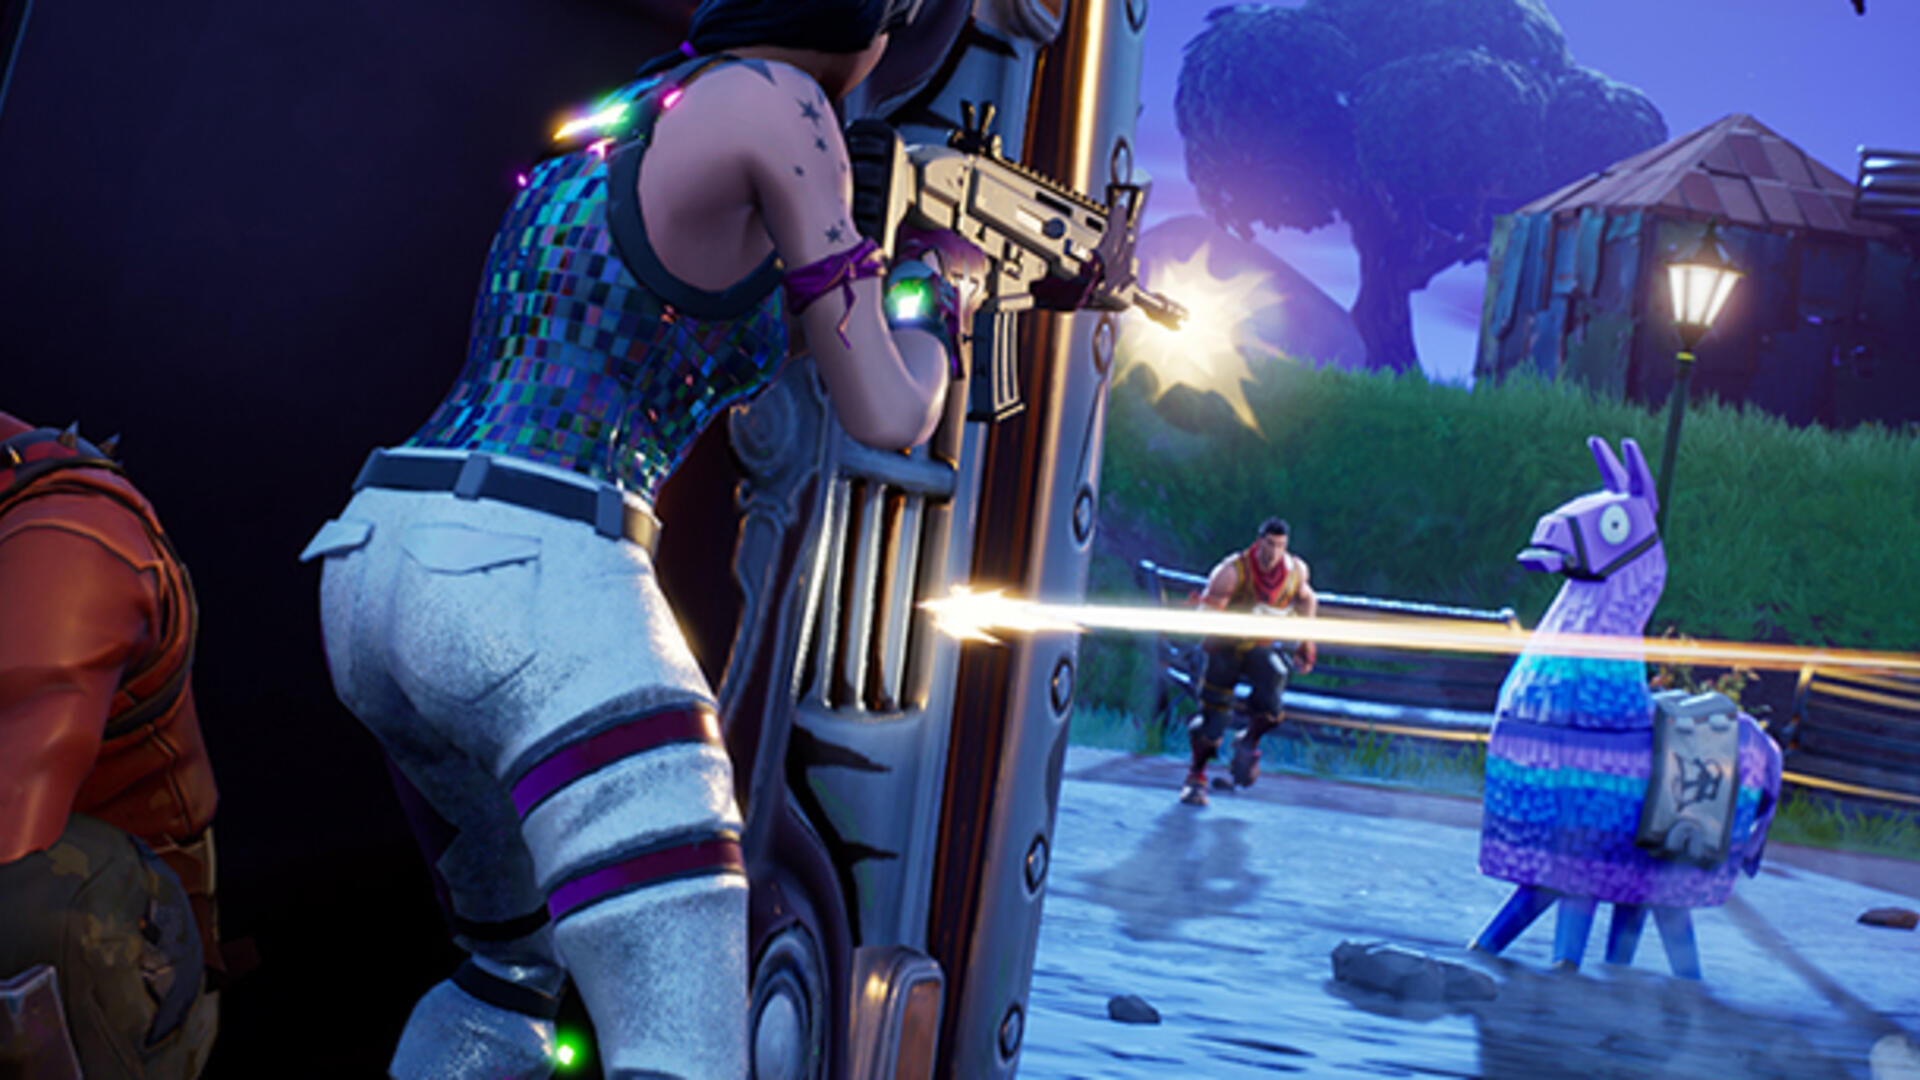 Fortnite is Starting to Get Pretty Chilly as Season 7 Approaches